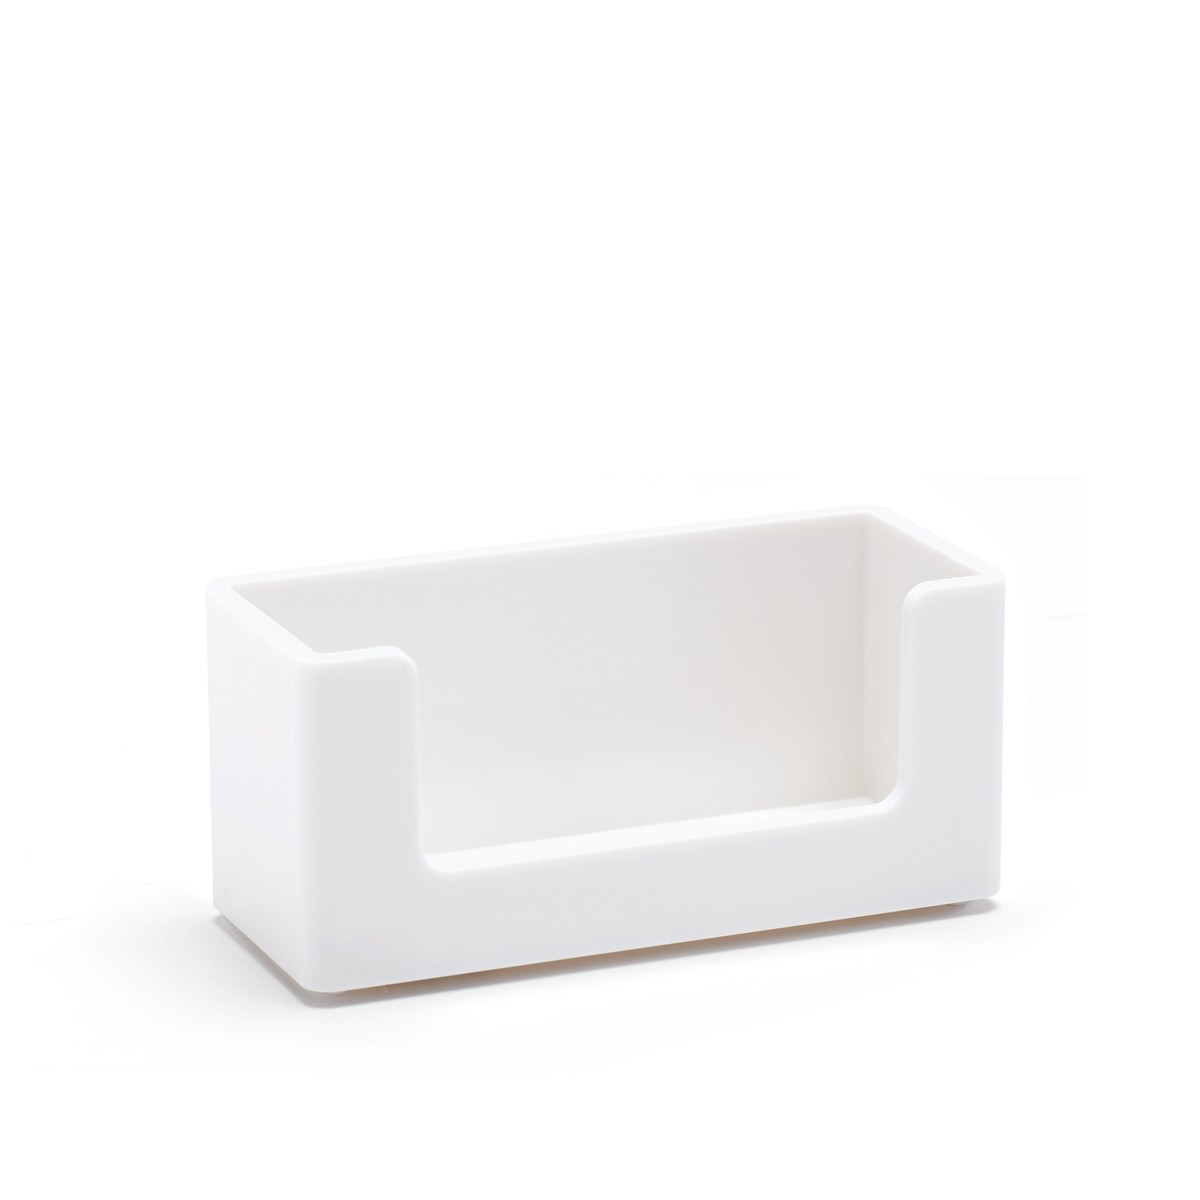 White Business Card Holder| Desk Accessories U0026 Organization | Poppin